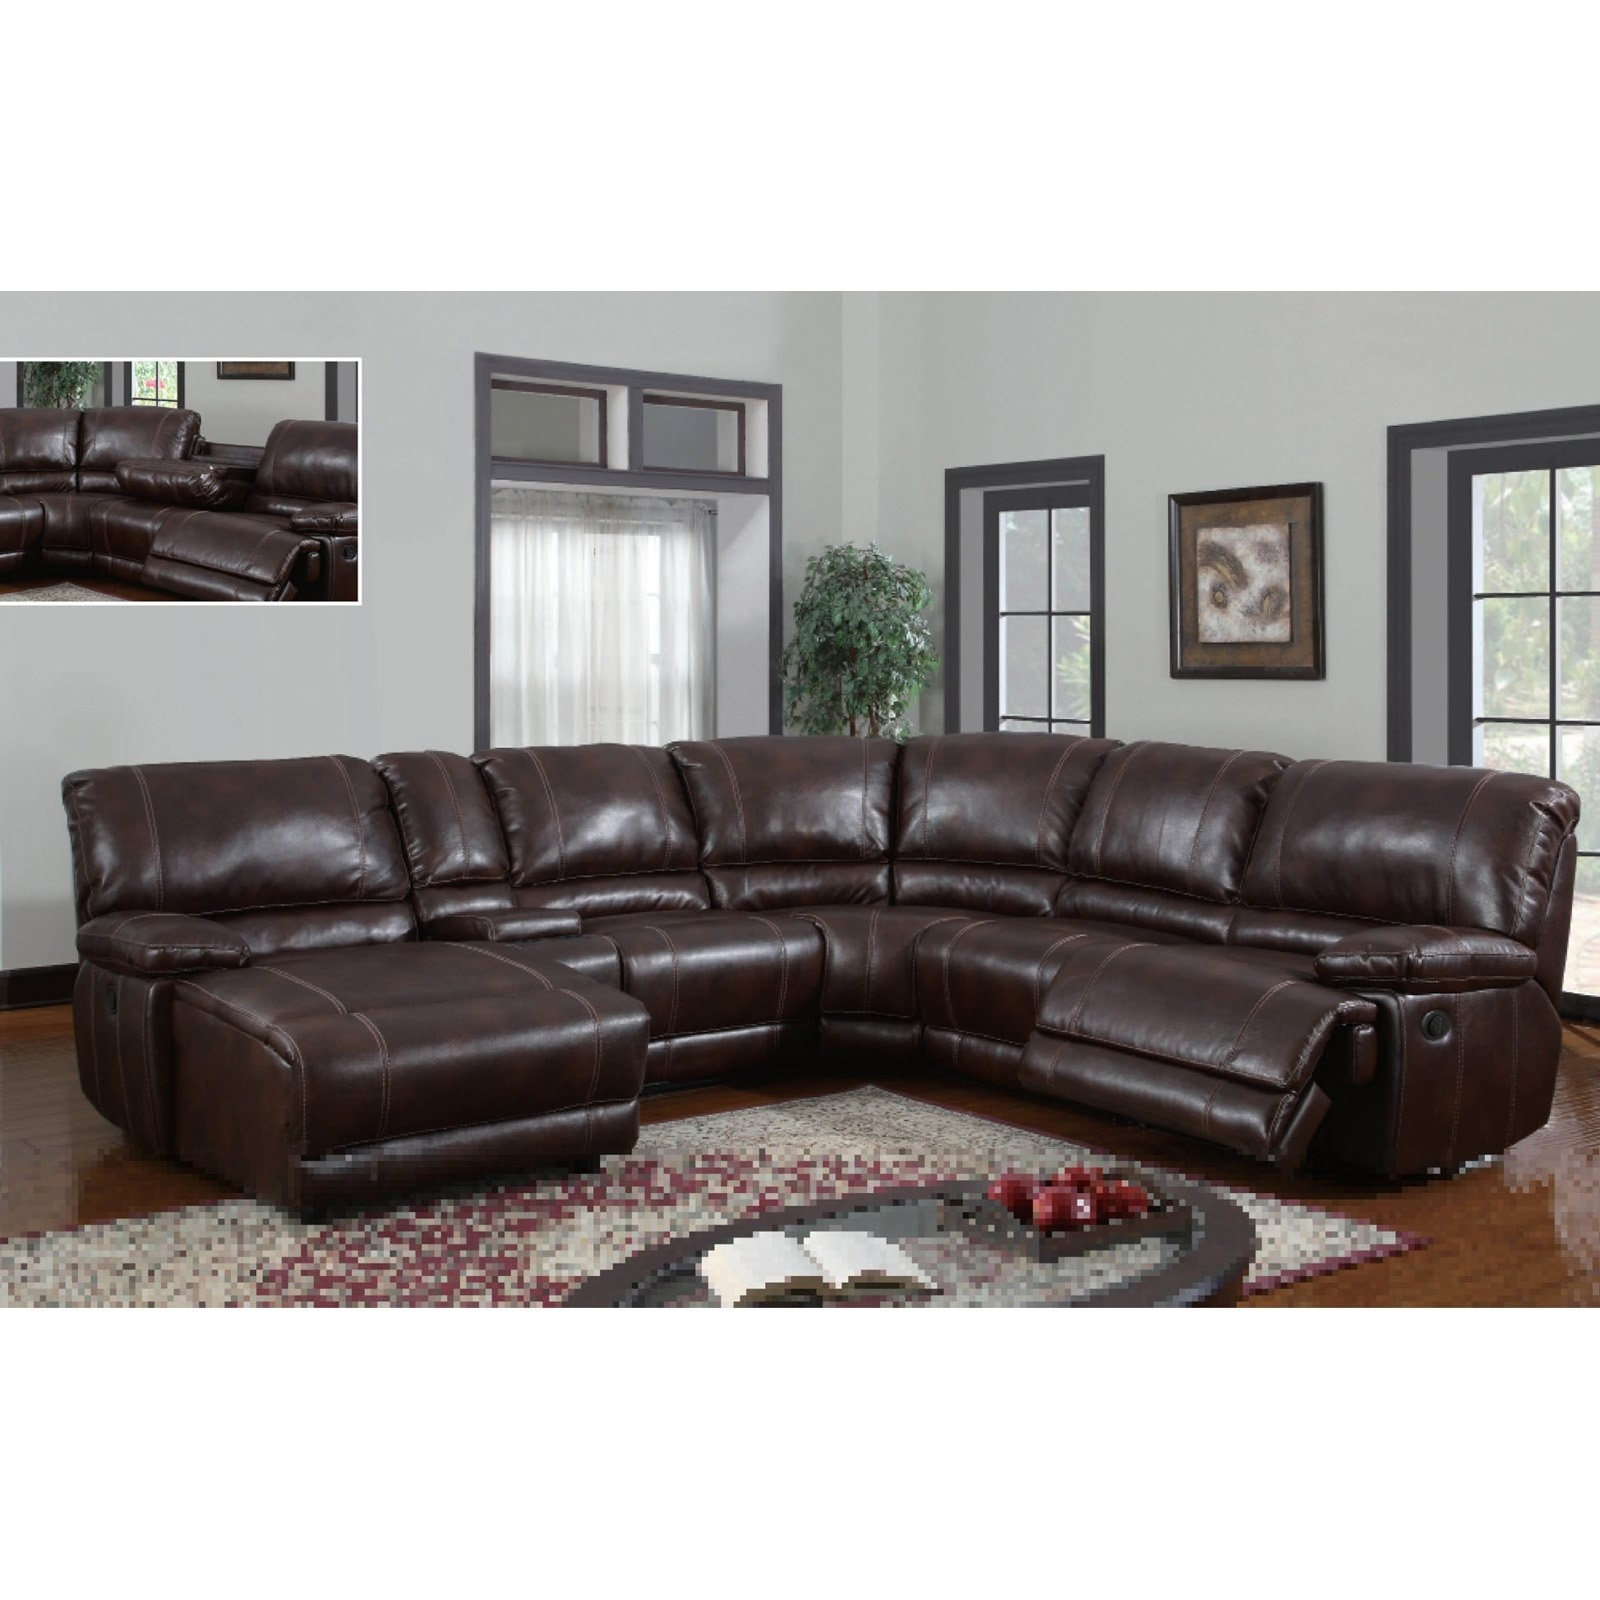 Leather Sectional Sofa With Power Recliner 11 With Leather Regarding Current Leather Recliner Sectional Sofas (View 11 of 15)